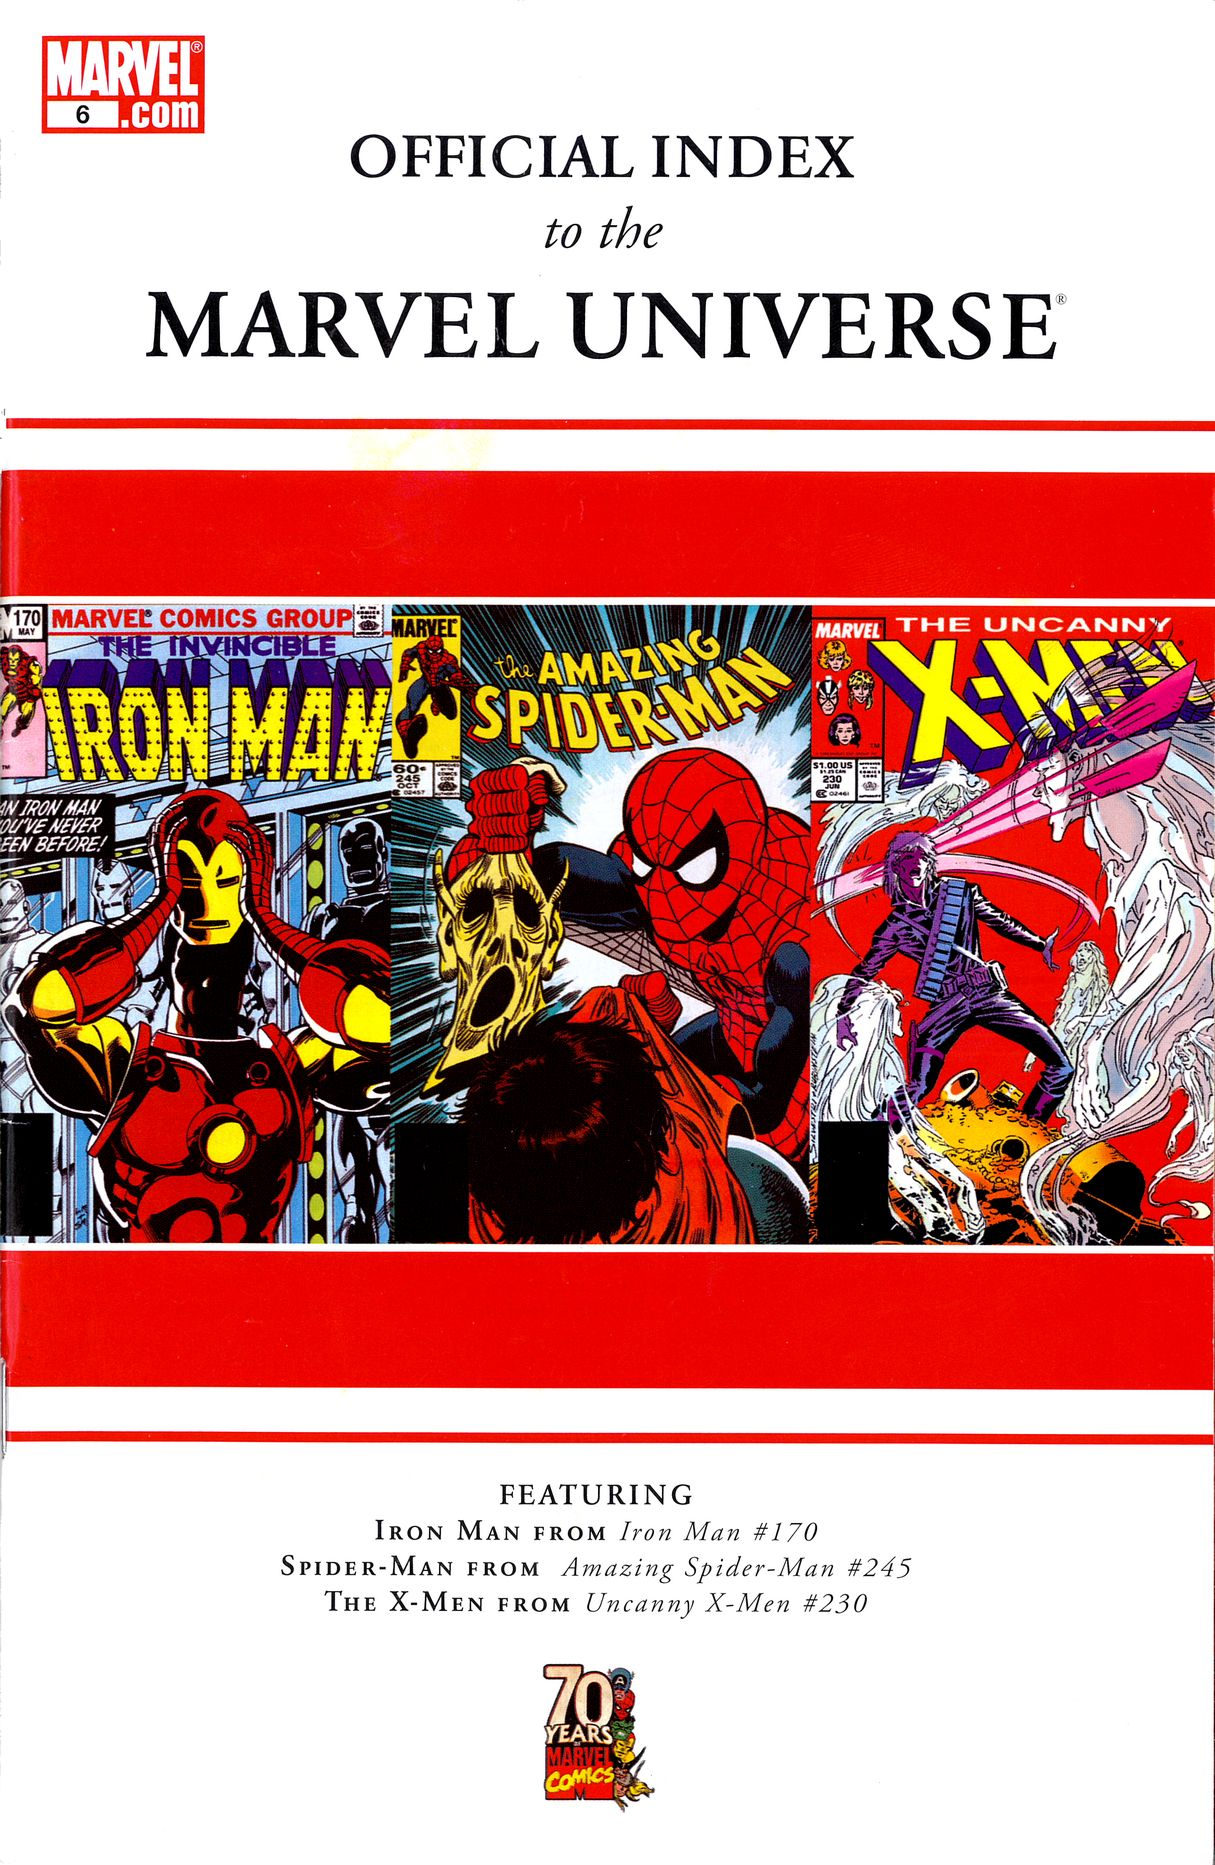 Read online Official Index to the Marvel Universe comic -  Issue #6 - 1